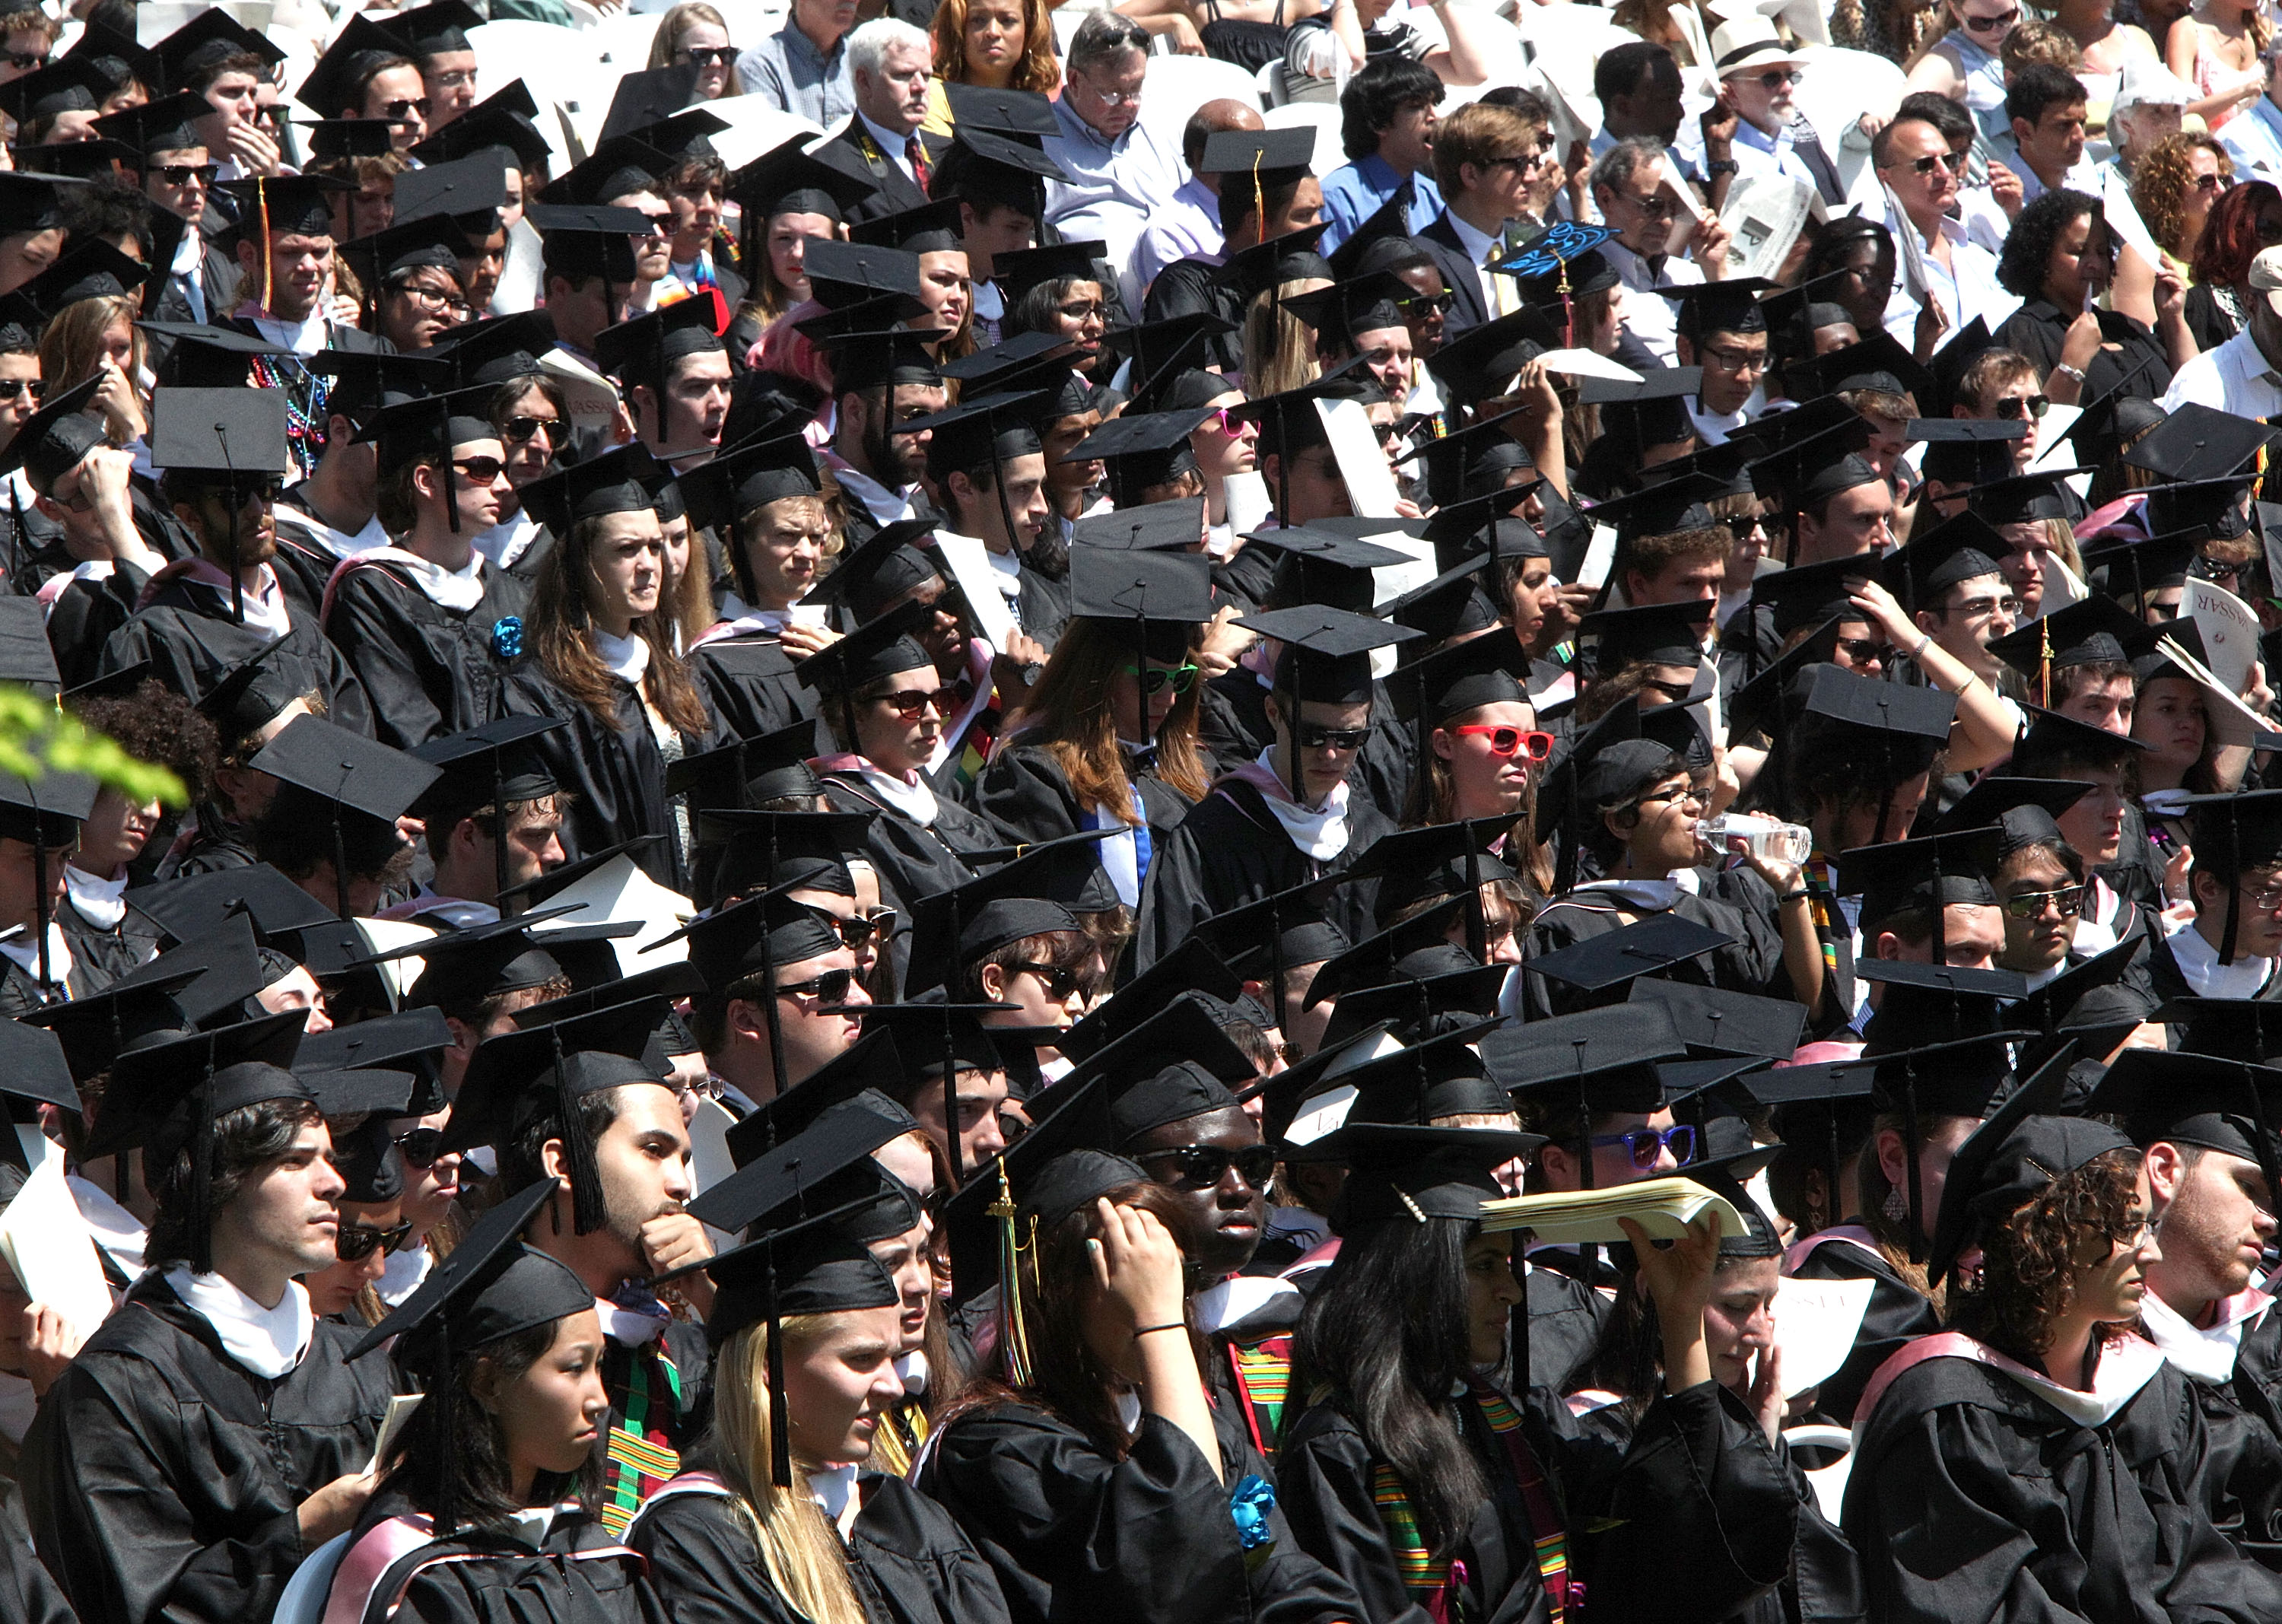 By the end of this decade analysts project almost two-thirds of workers will been a credential past a high school diploma. The Obama administration is part of a national push for changes to higher education officials hope could produce more college graduates more efficiently. Photo of 2012 Vassar College commencement by Paul Zimmerman/Getty Images.